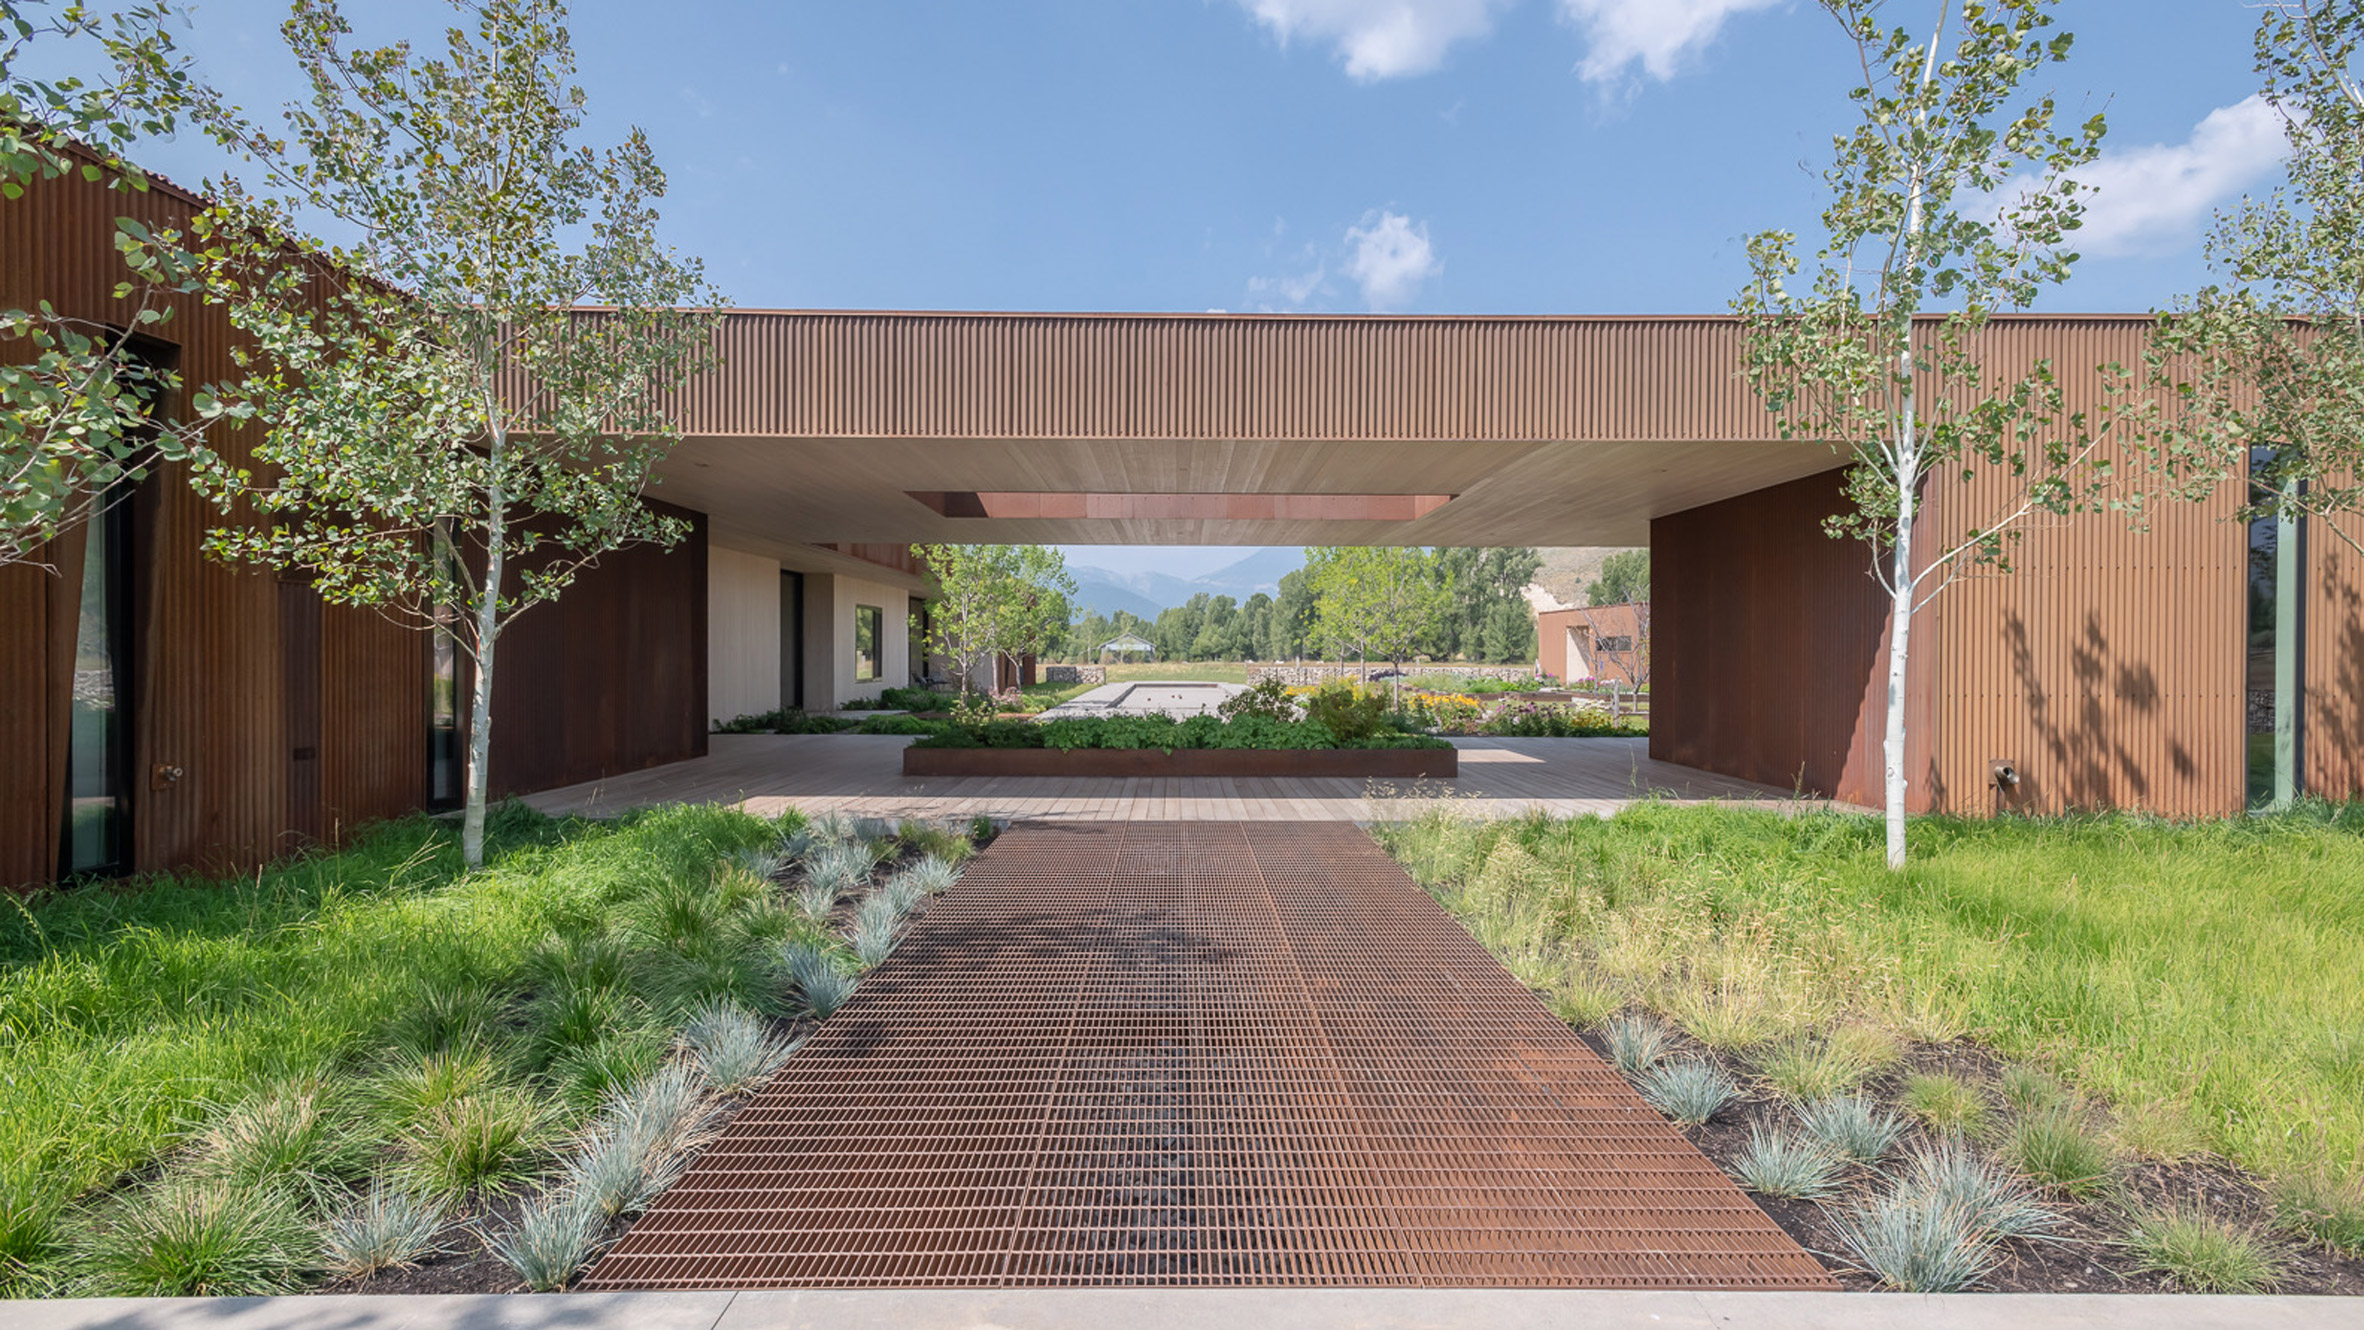 Carney Logan Burke Wraps Dogtrot Residence In Weathering Steel To Blend With Wyoming Terrain